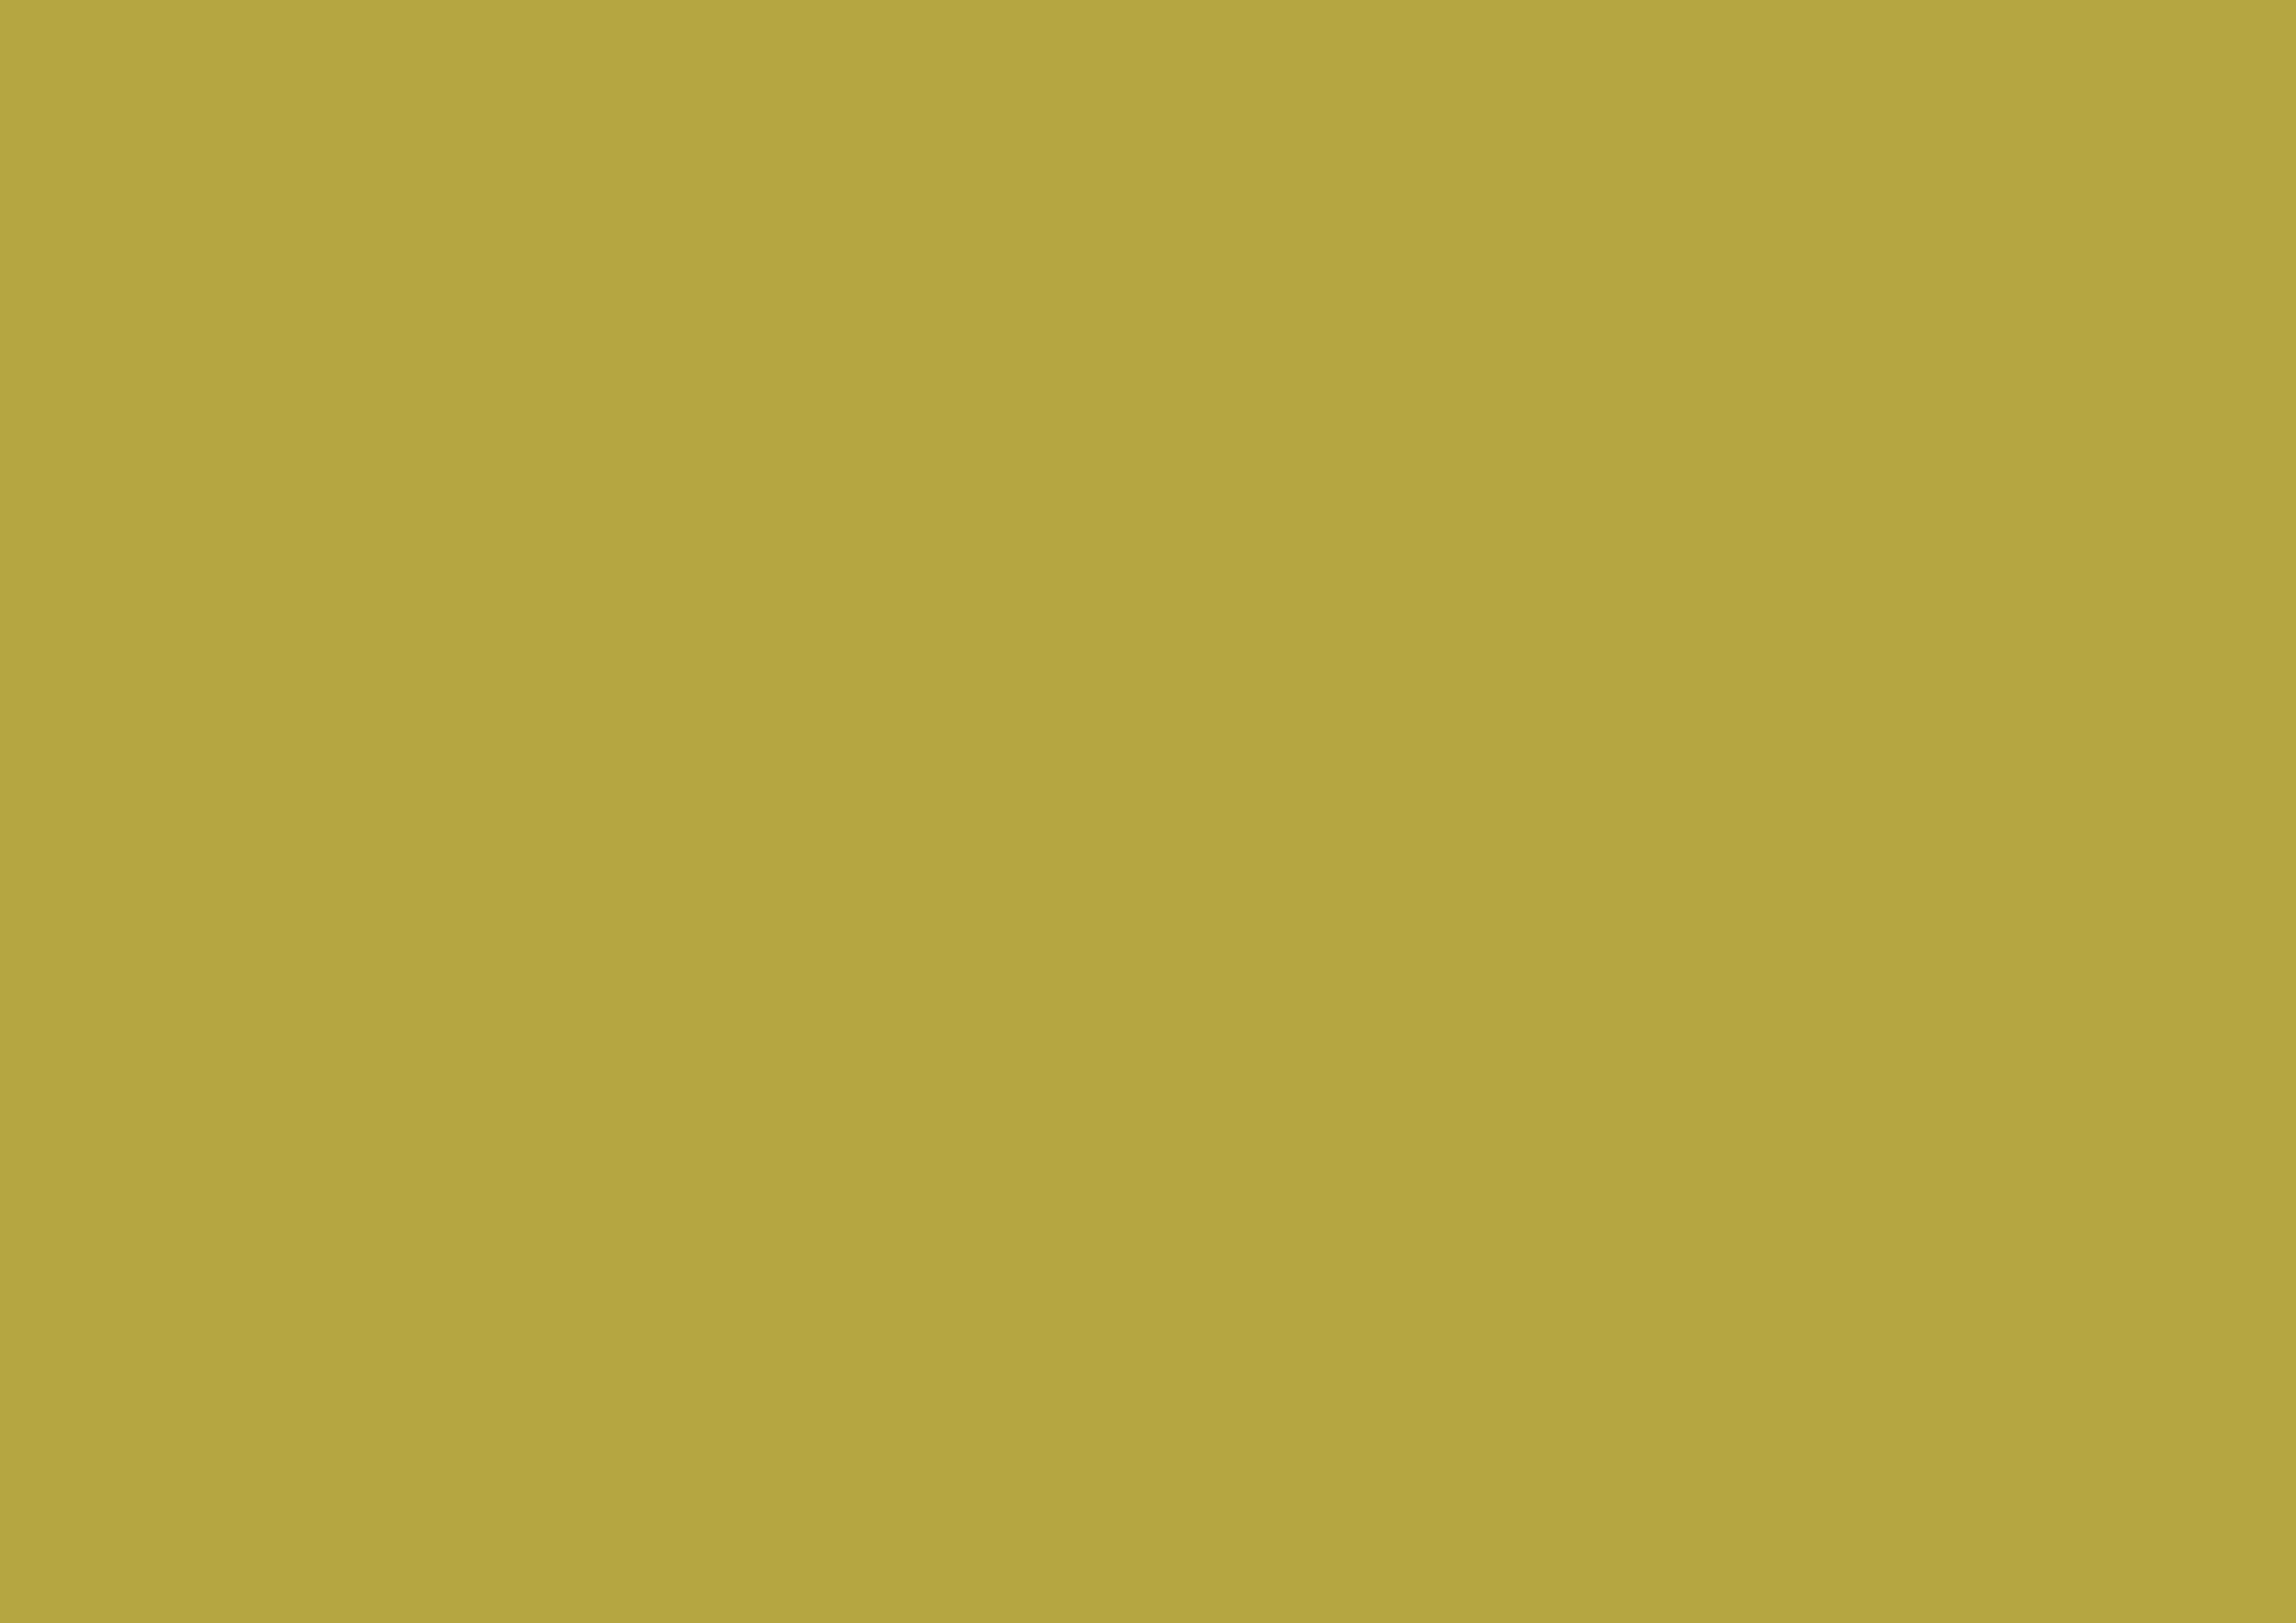 3508x2480 Brass Solid Color Background